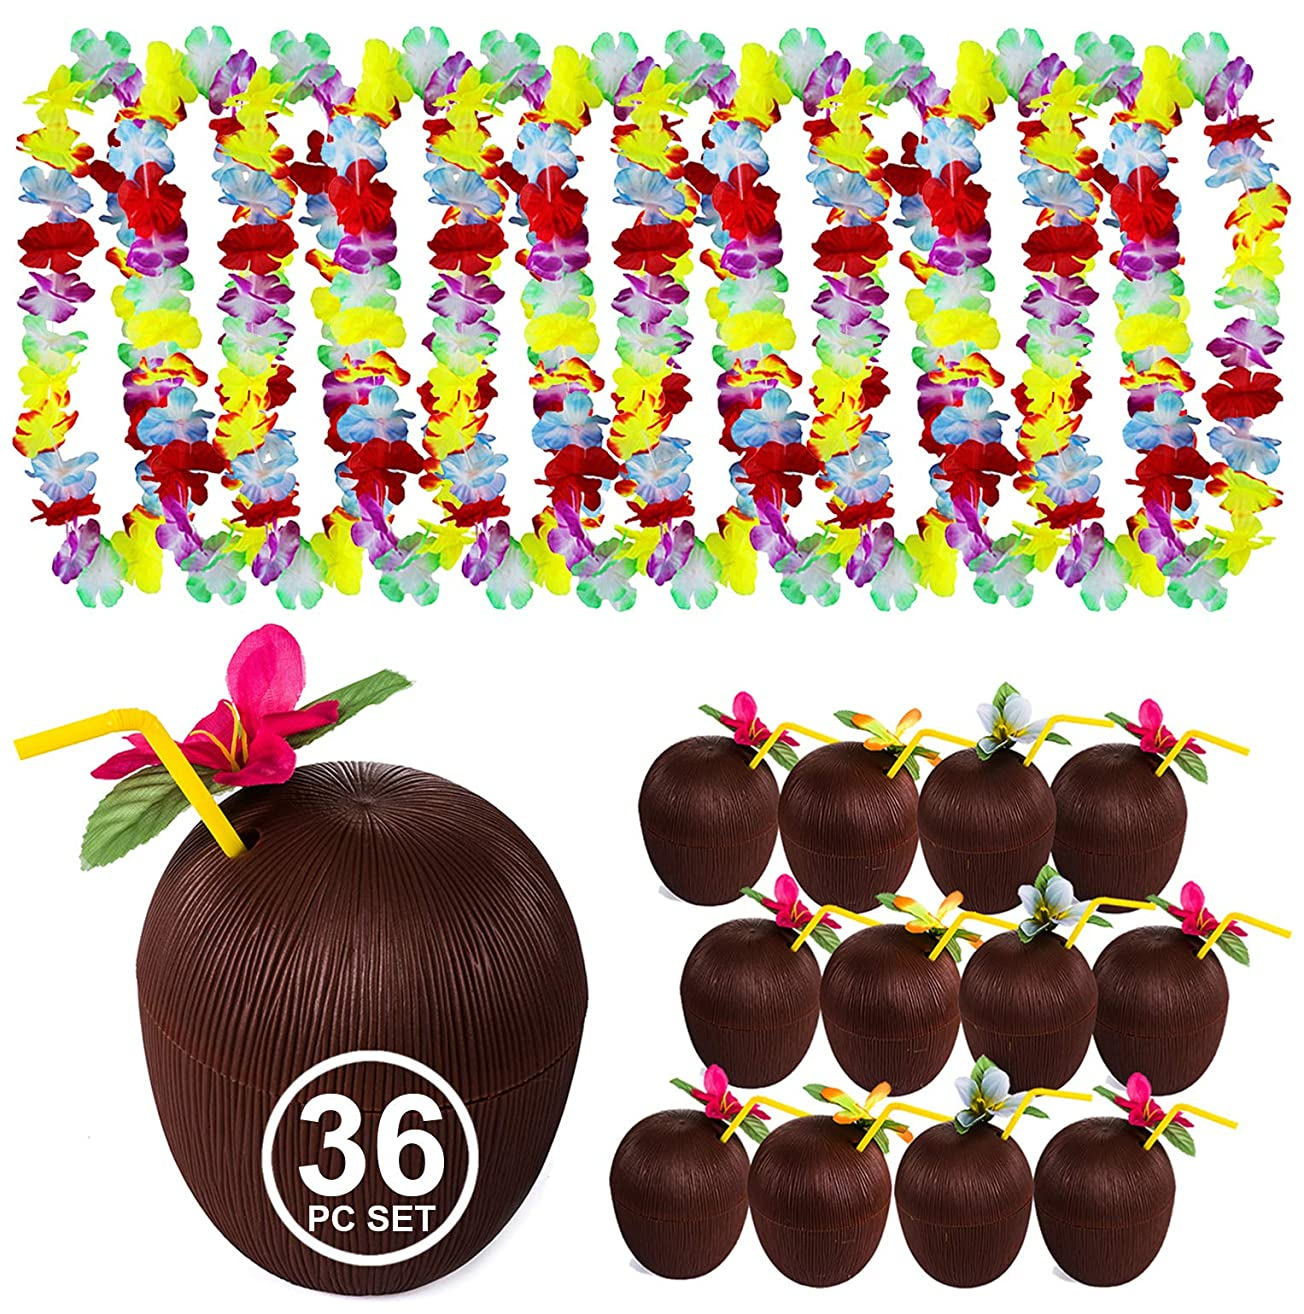 Tigerdoe Luau Party Supplies - Coconut Cups - Flower Leis - Tiki Party - Hawaiian Costume - Hawaiian Party Decorations